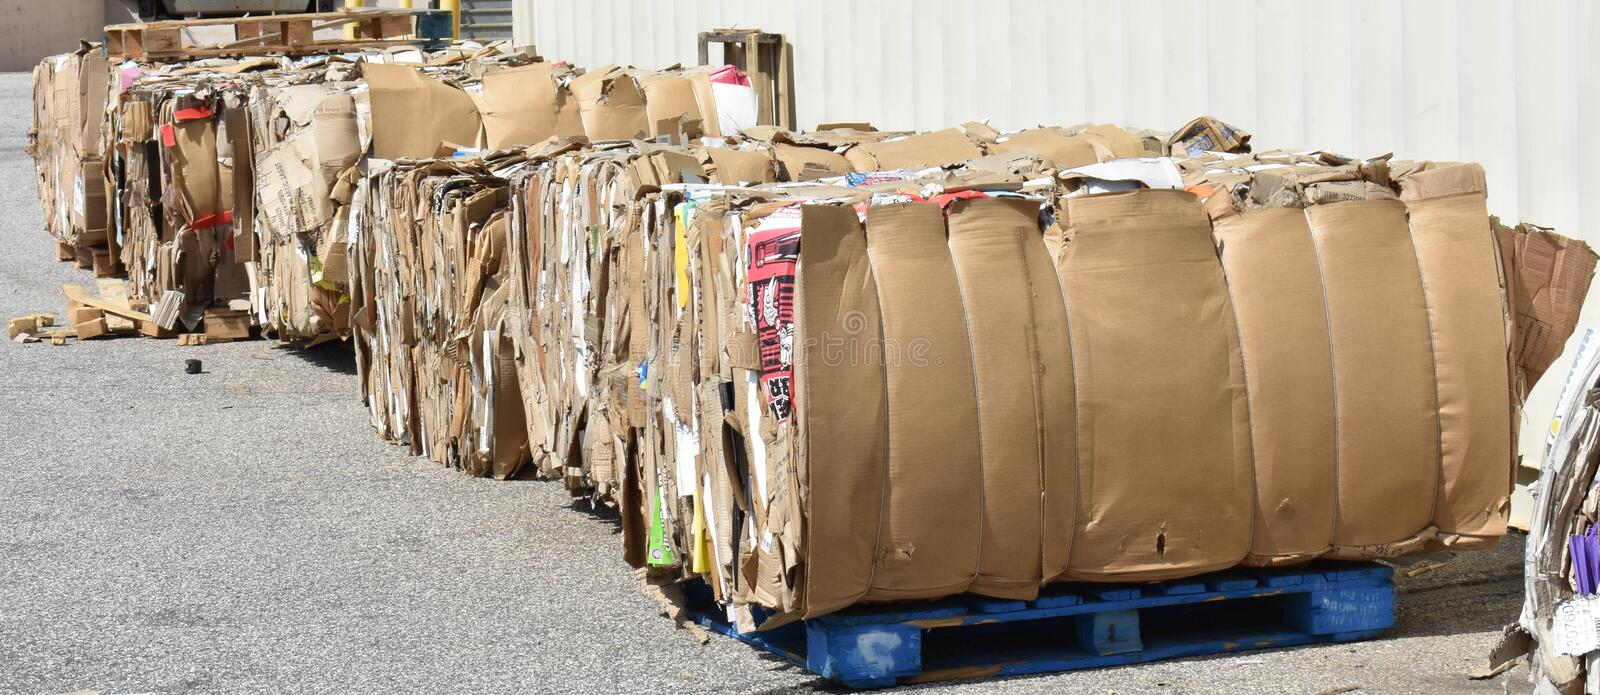 Large bales of cardboard await recycling. Large bales of palatalized cardboard await pickup by a recycling company. Much recycled cardboard and plastic in the US royalty free stock image